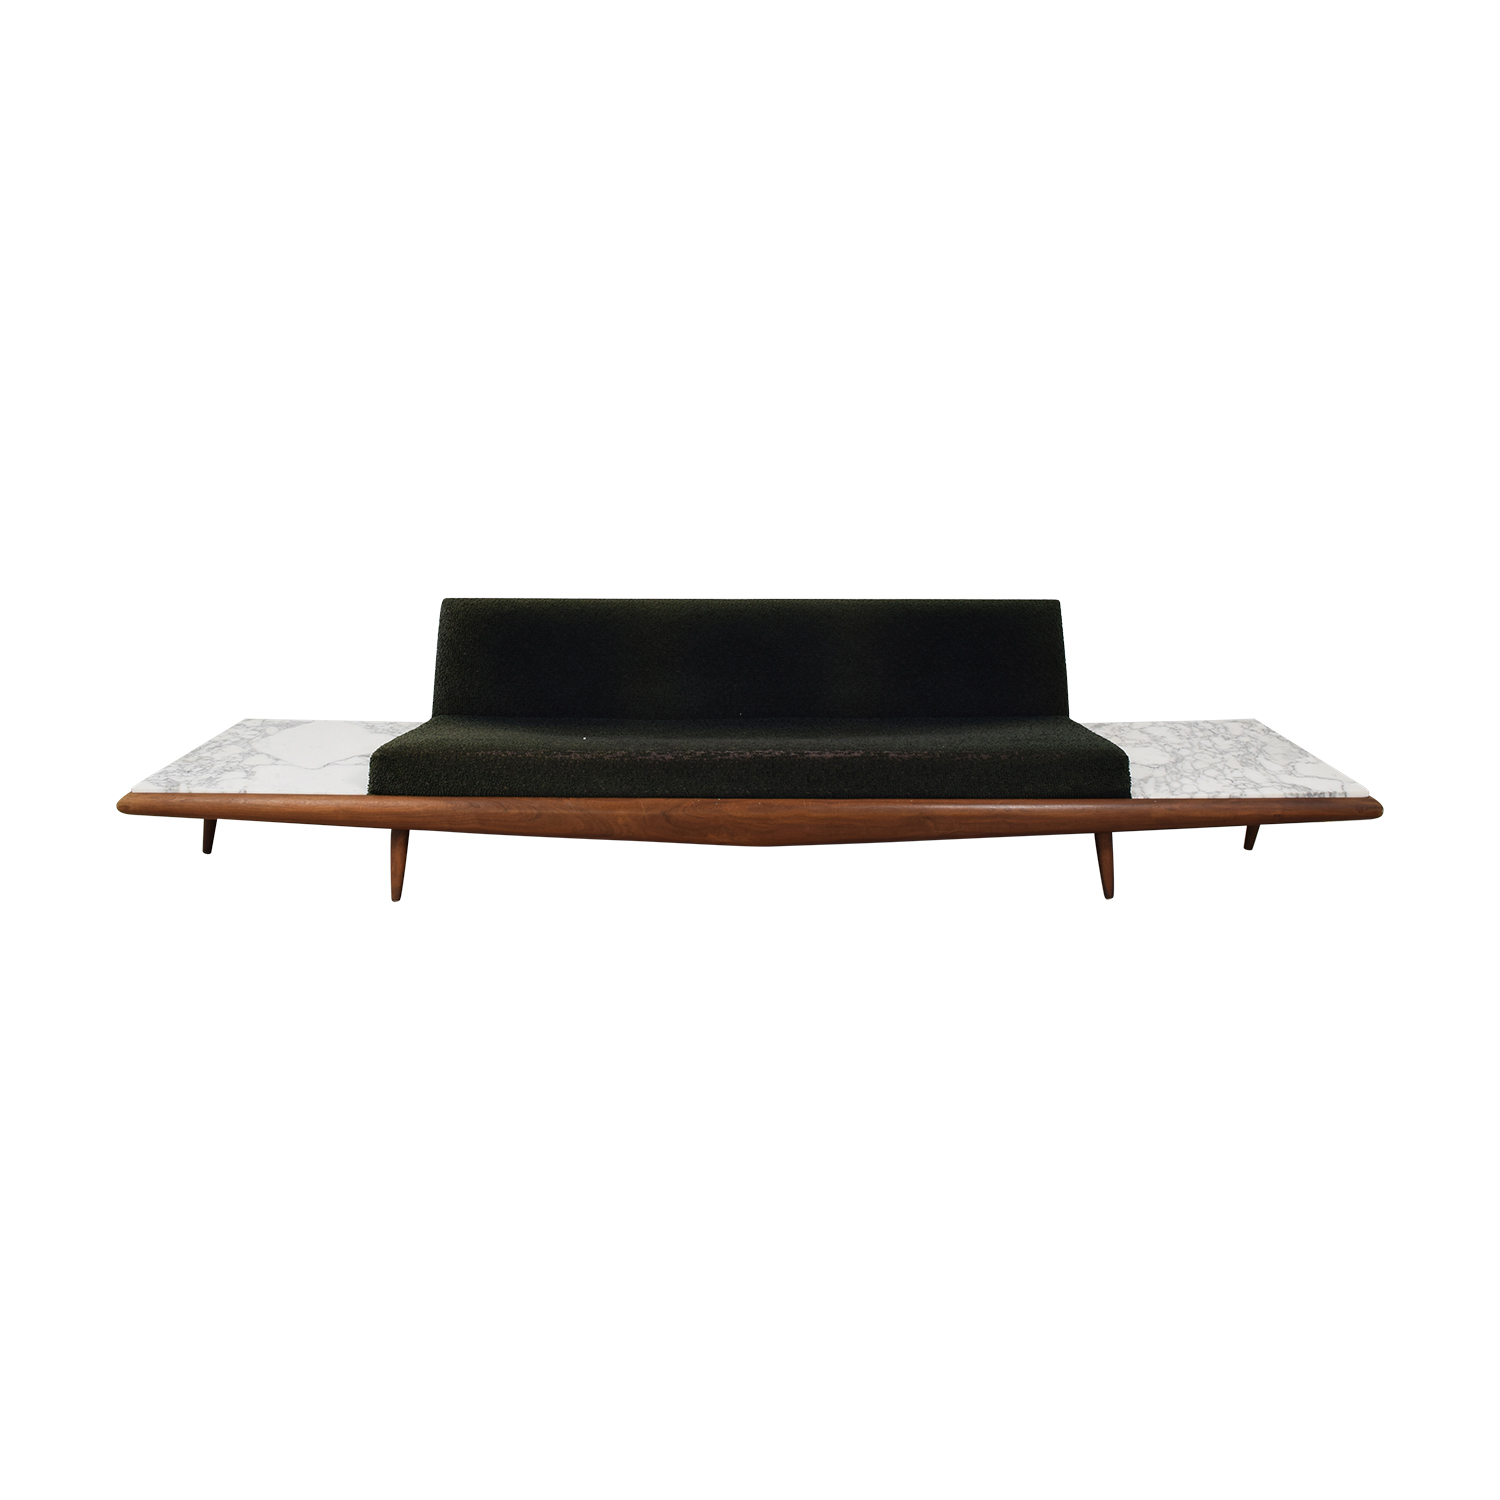 shop Craft Associates Craft Associates by Adrian Pearsall Floating Platform Sofa With Carrara Marble Side Tables online